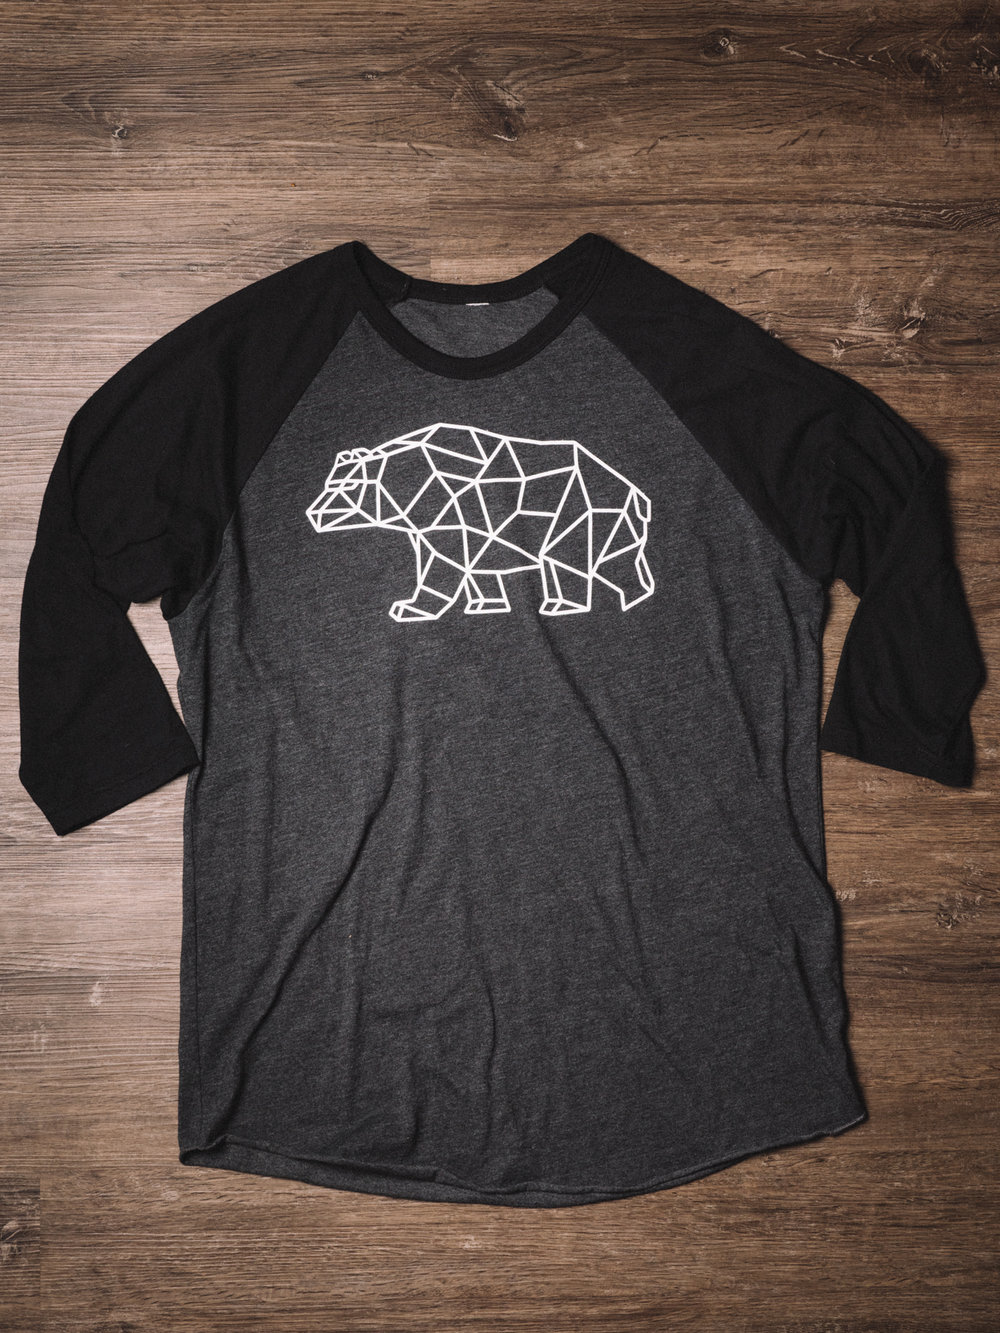 Leftcoast_Bear_3:4-shirt.jpg